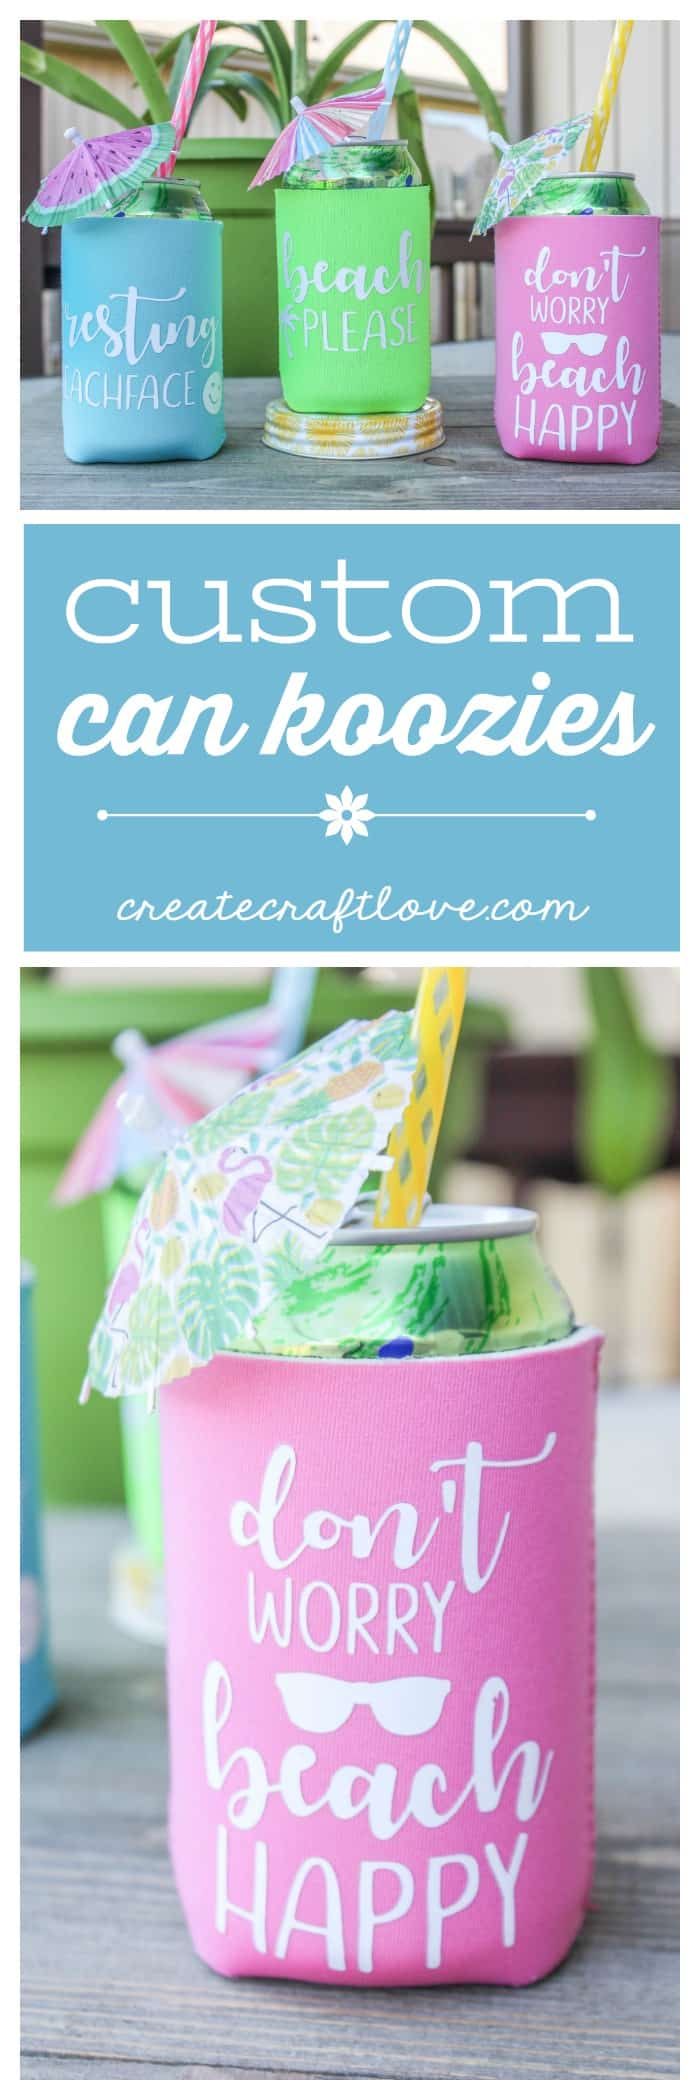 Create your own Custom Can Koozies with your Cricut Explore!  Perfect hostess gift for summer gatherings!